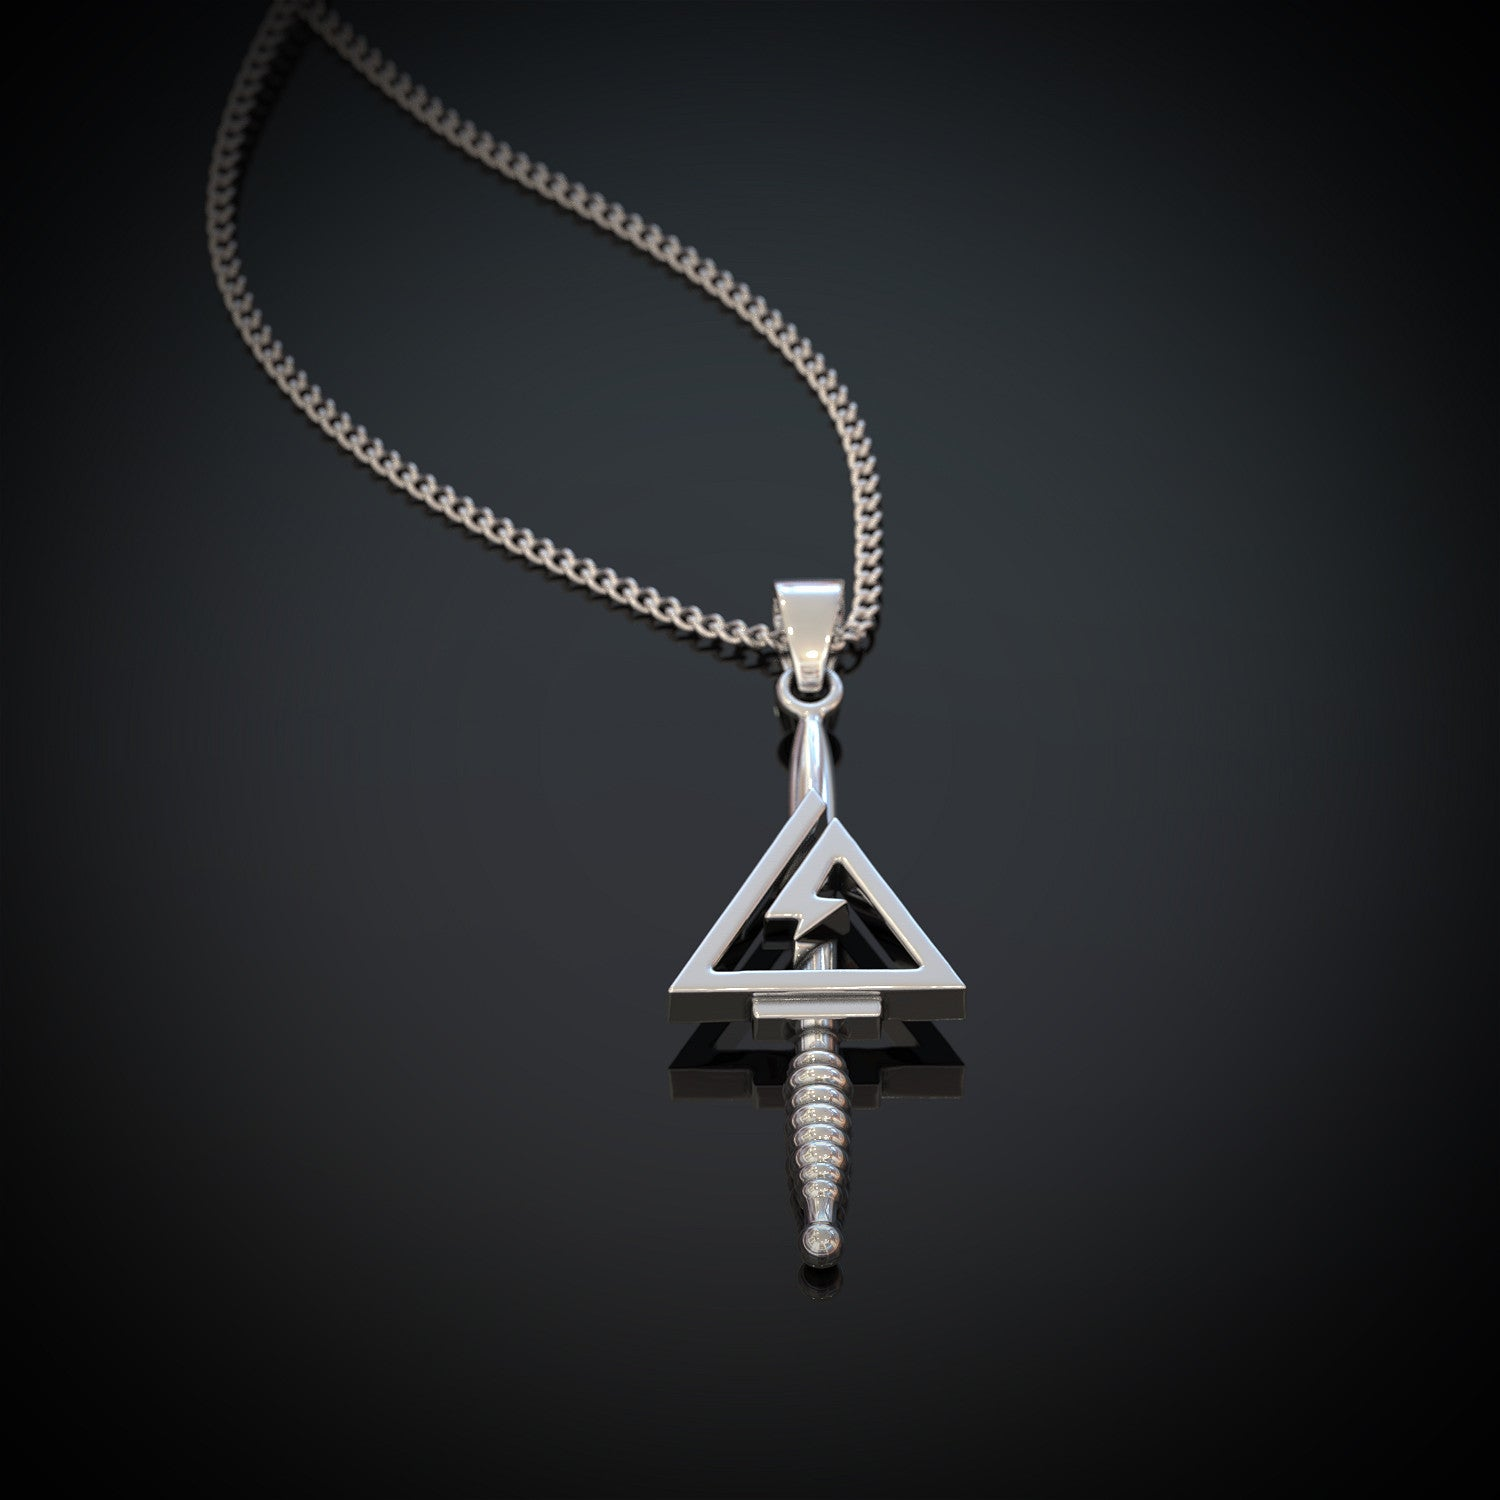 USA Army Delta Force Necklace